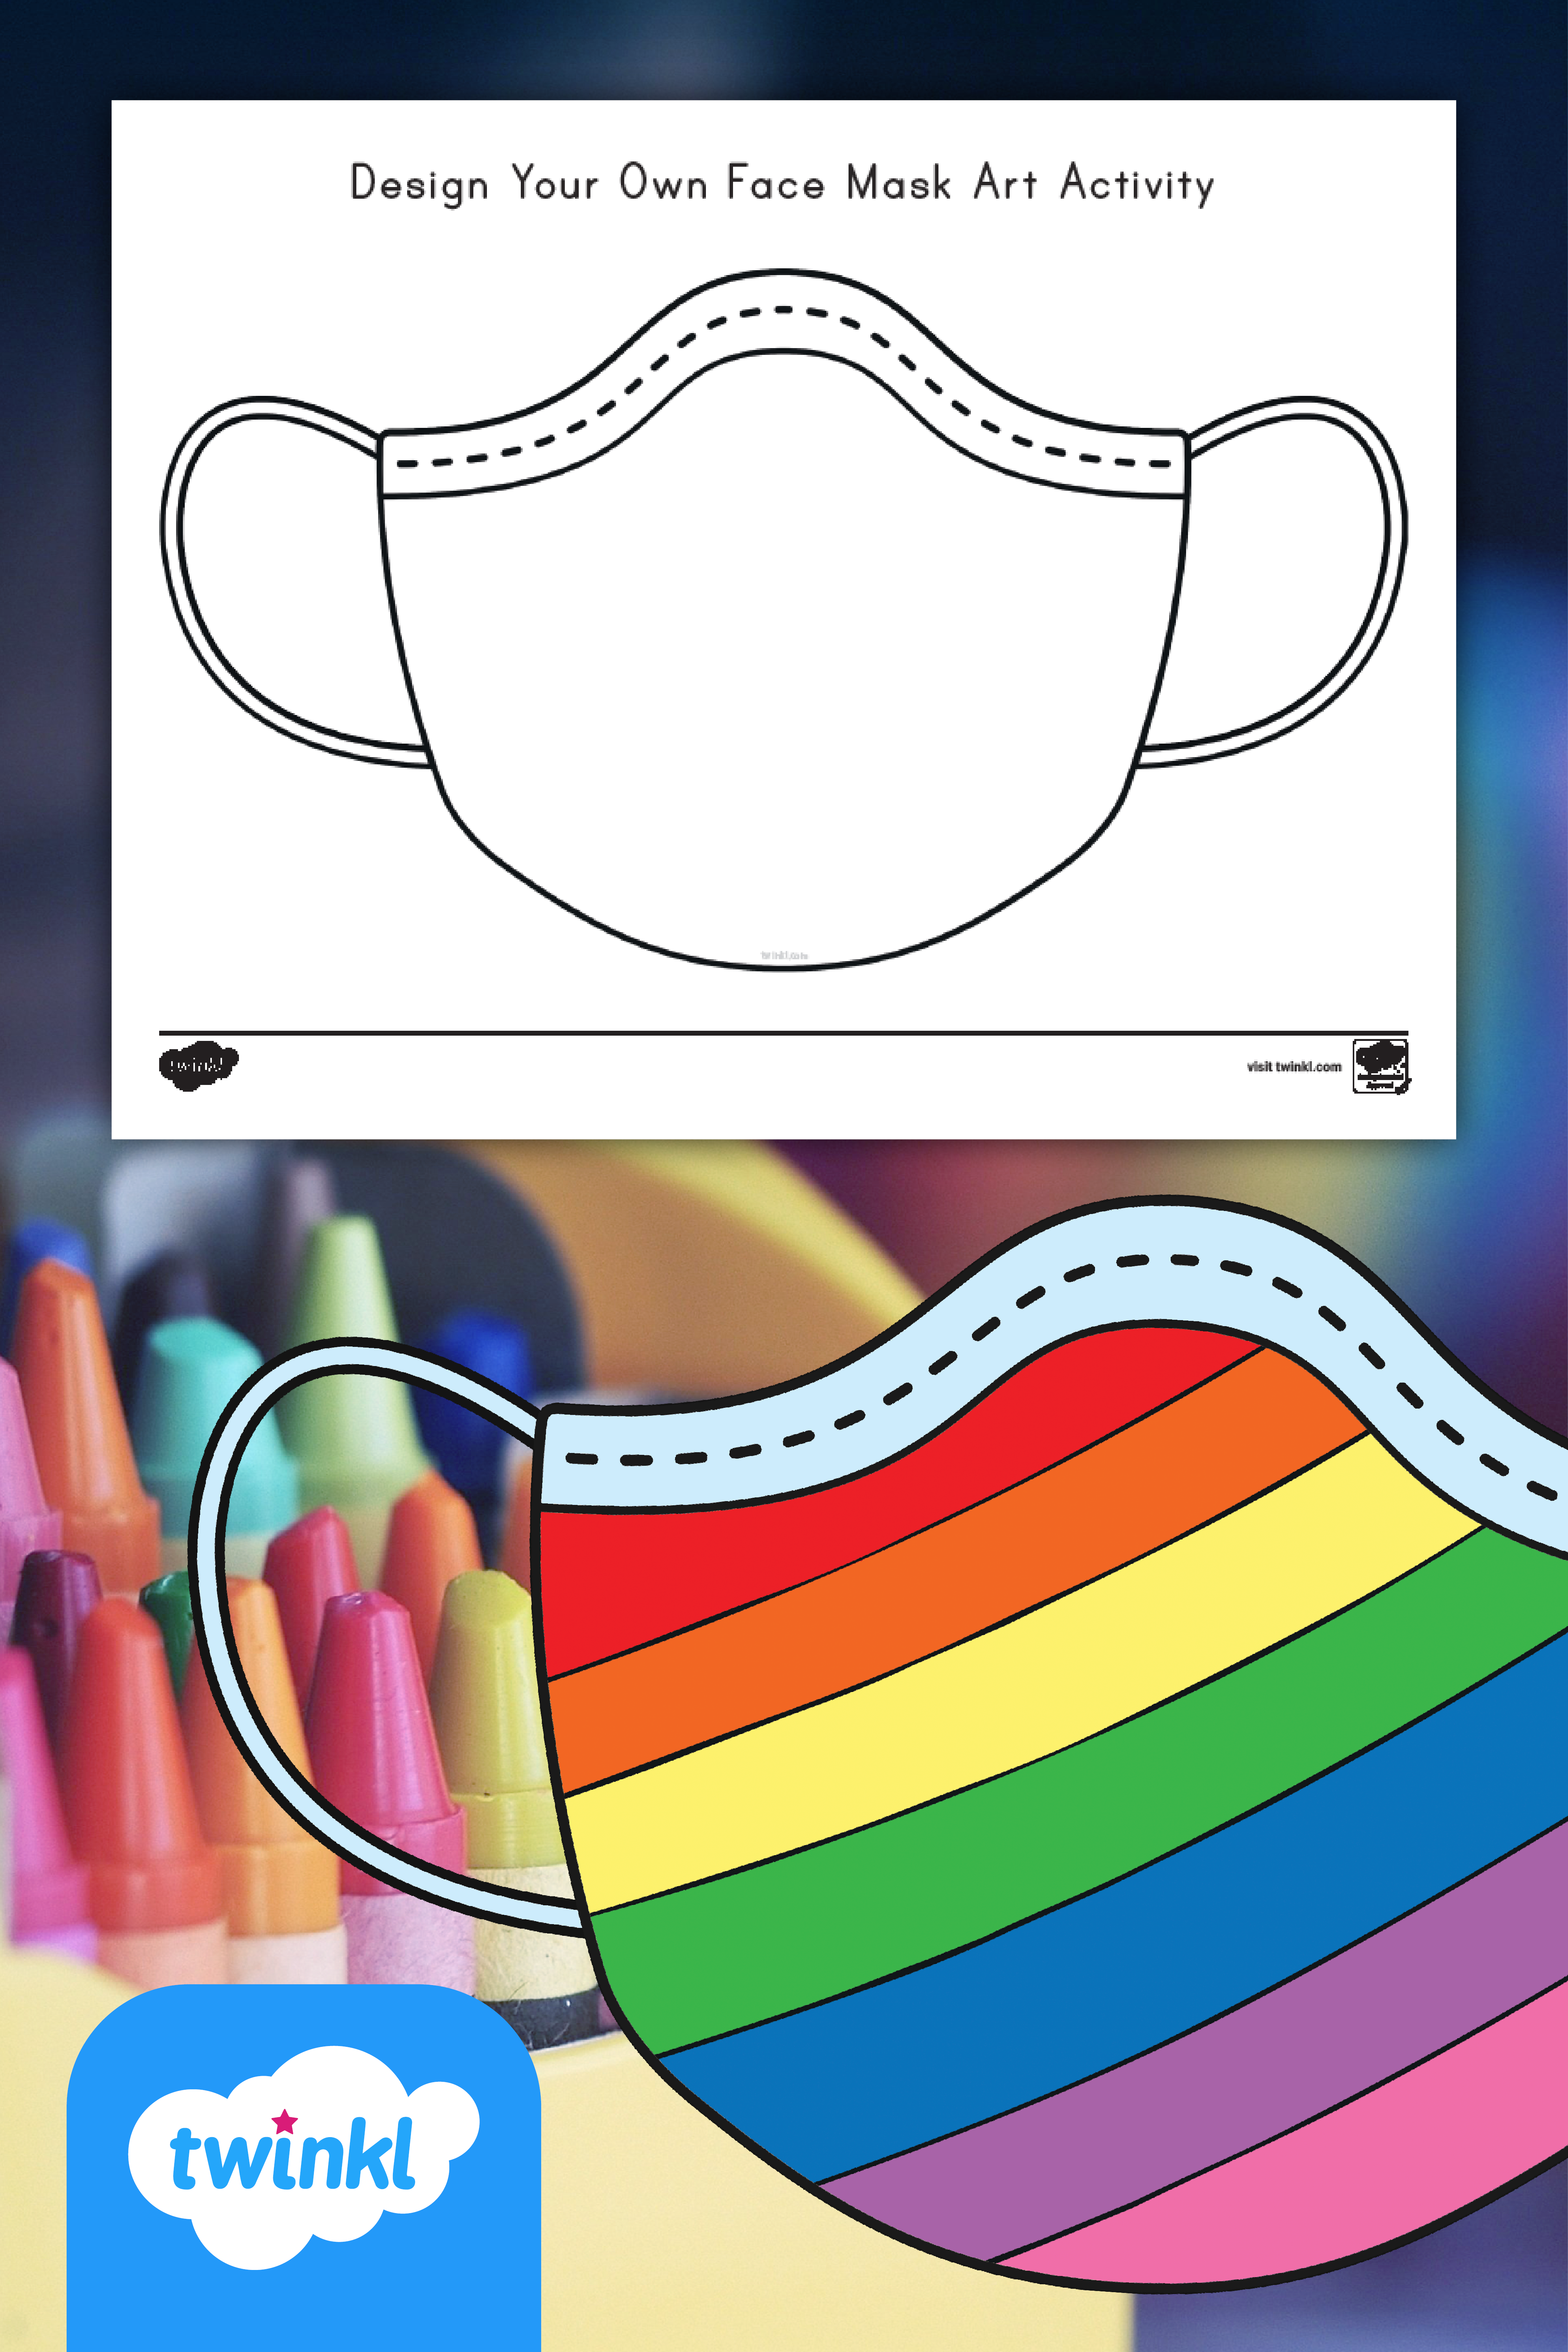 Design Your Own Face Mask Art Activity